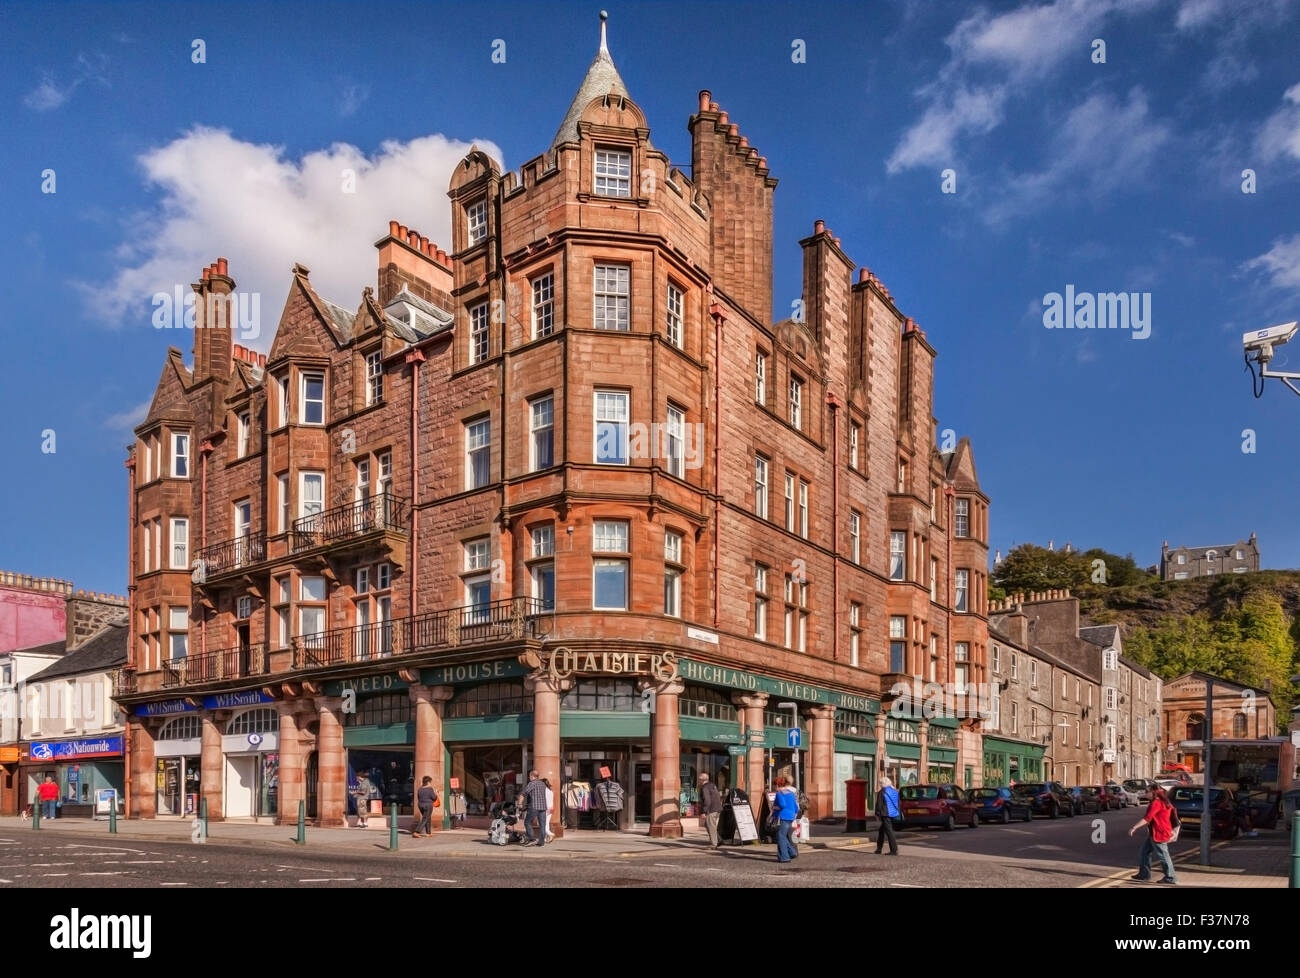 Chalmers Highland Tweed House, Oban, Argyll and Bute, Scotland, UK. - Stock Image